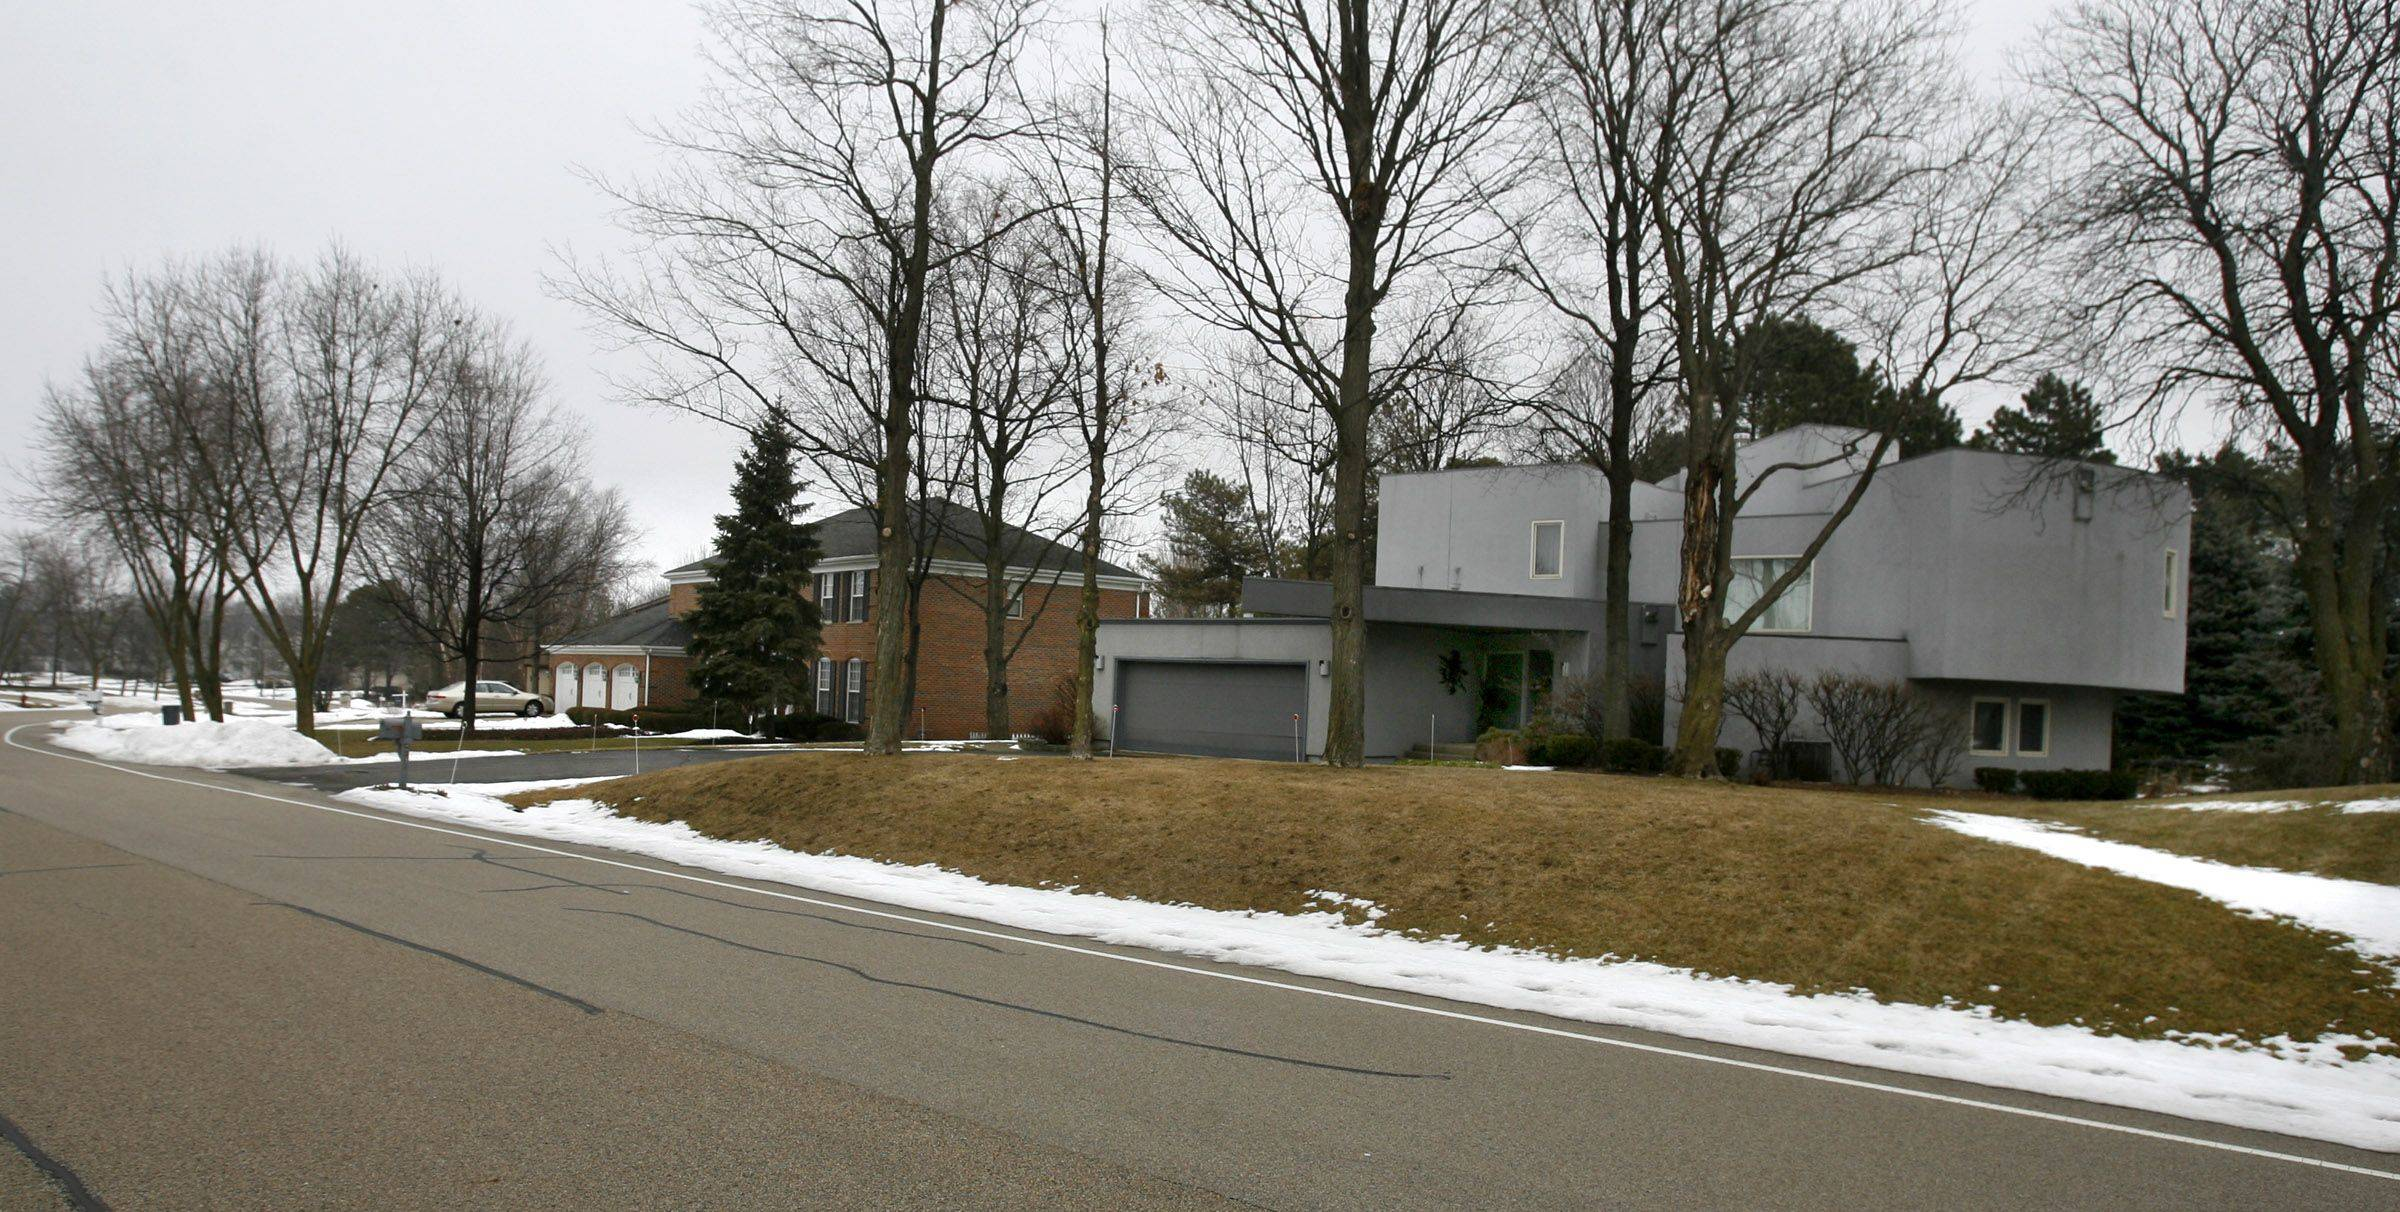 Houses along Acacia Terrace in the Sterling Green neighborhood feature large lots that make the subdivision desirable.